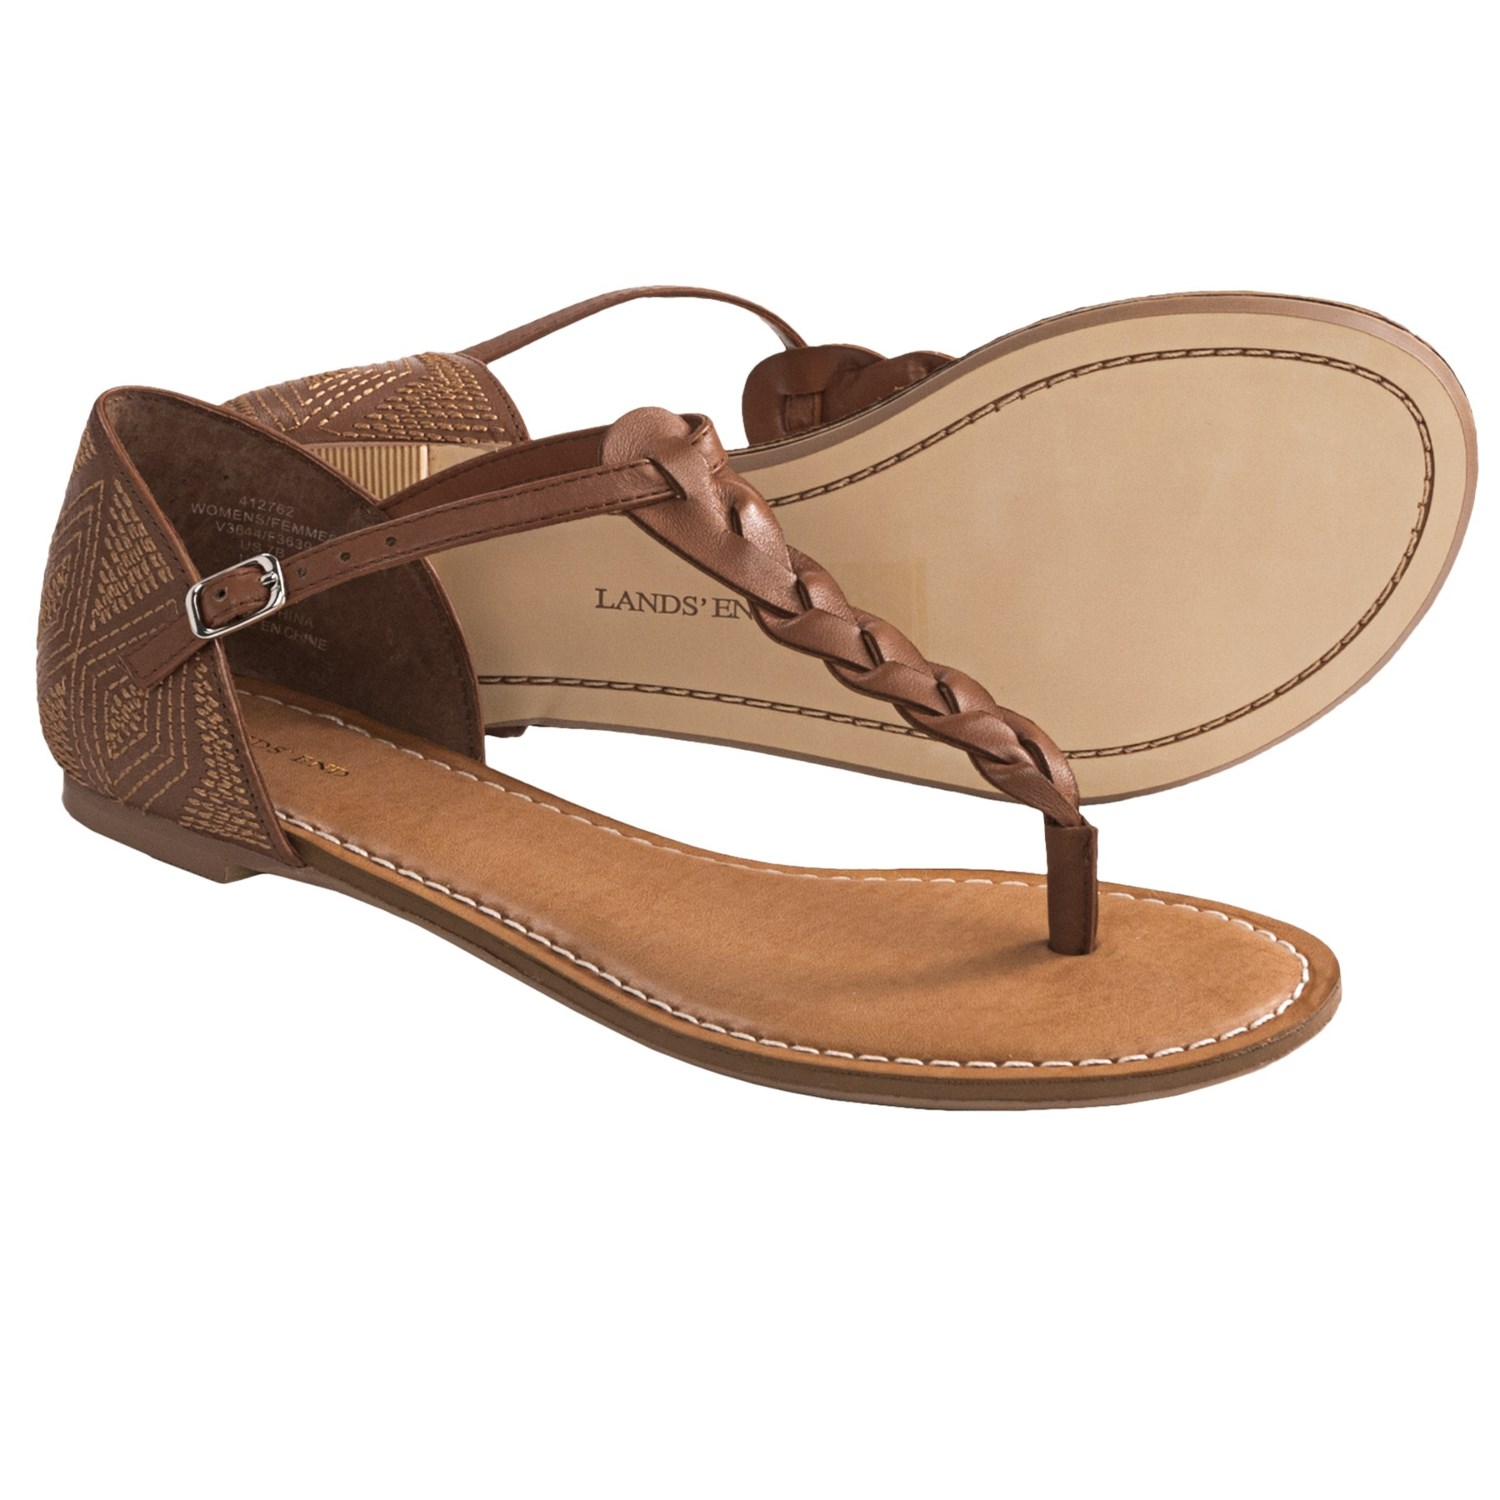 Brilliant EBay HOT Deals Today Has The Lowest Price Deal For Soda Impact Womens Gladiator Thong Flat Sandals $14 It Usually Retails For Over $49, Which Makes